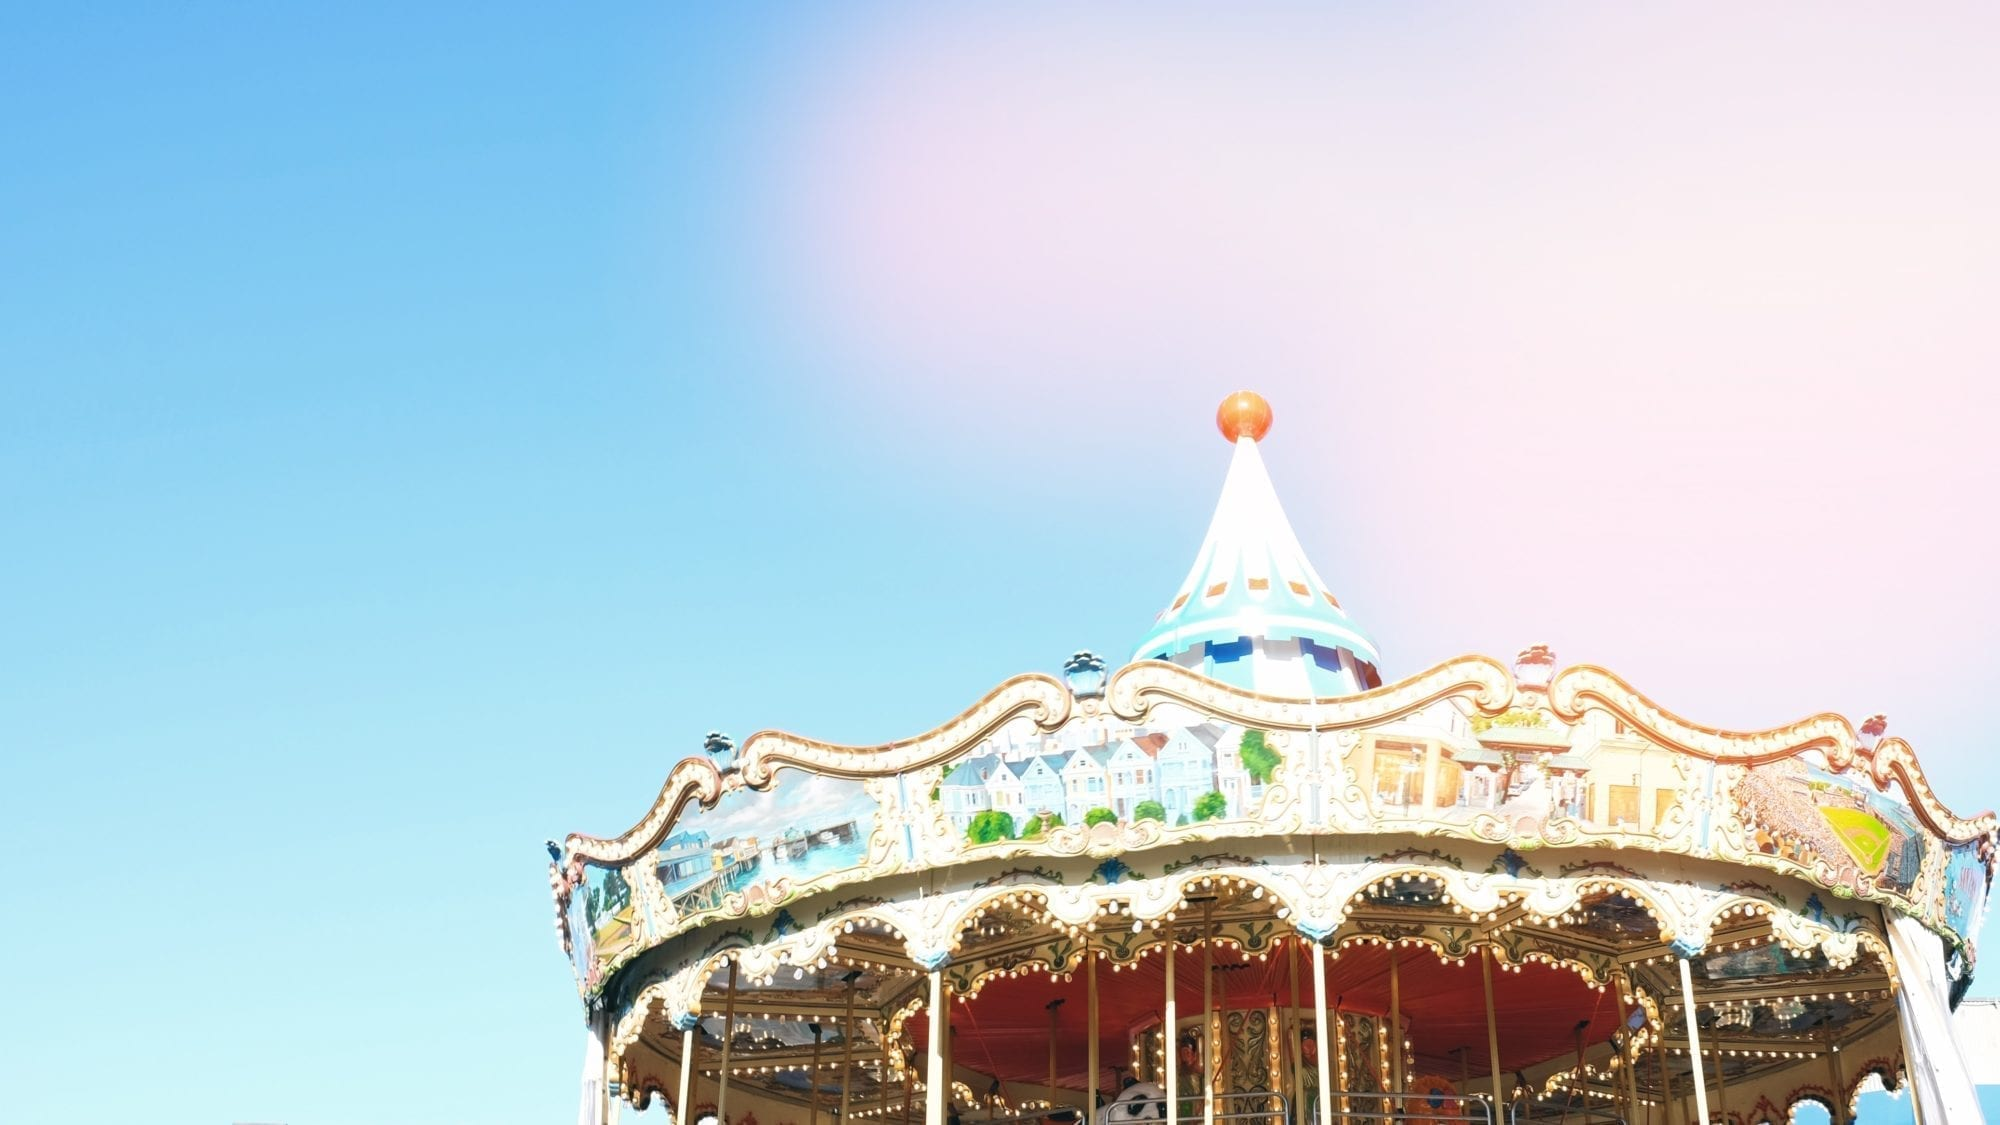 Poem: Jealousy is a Carousel